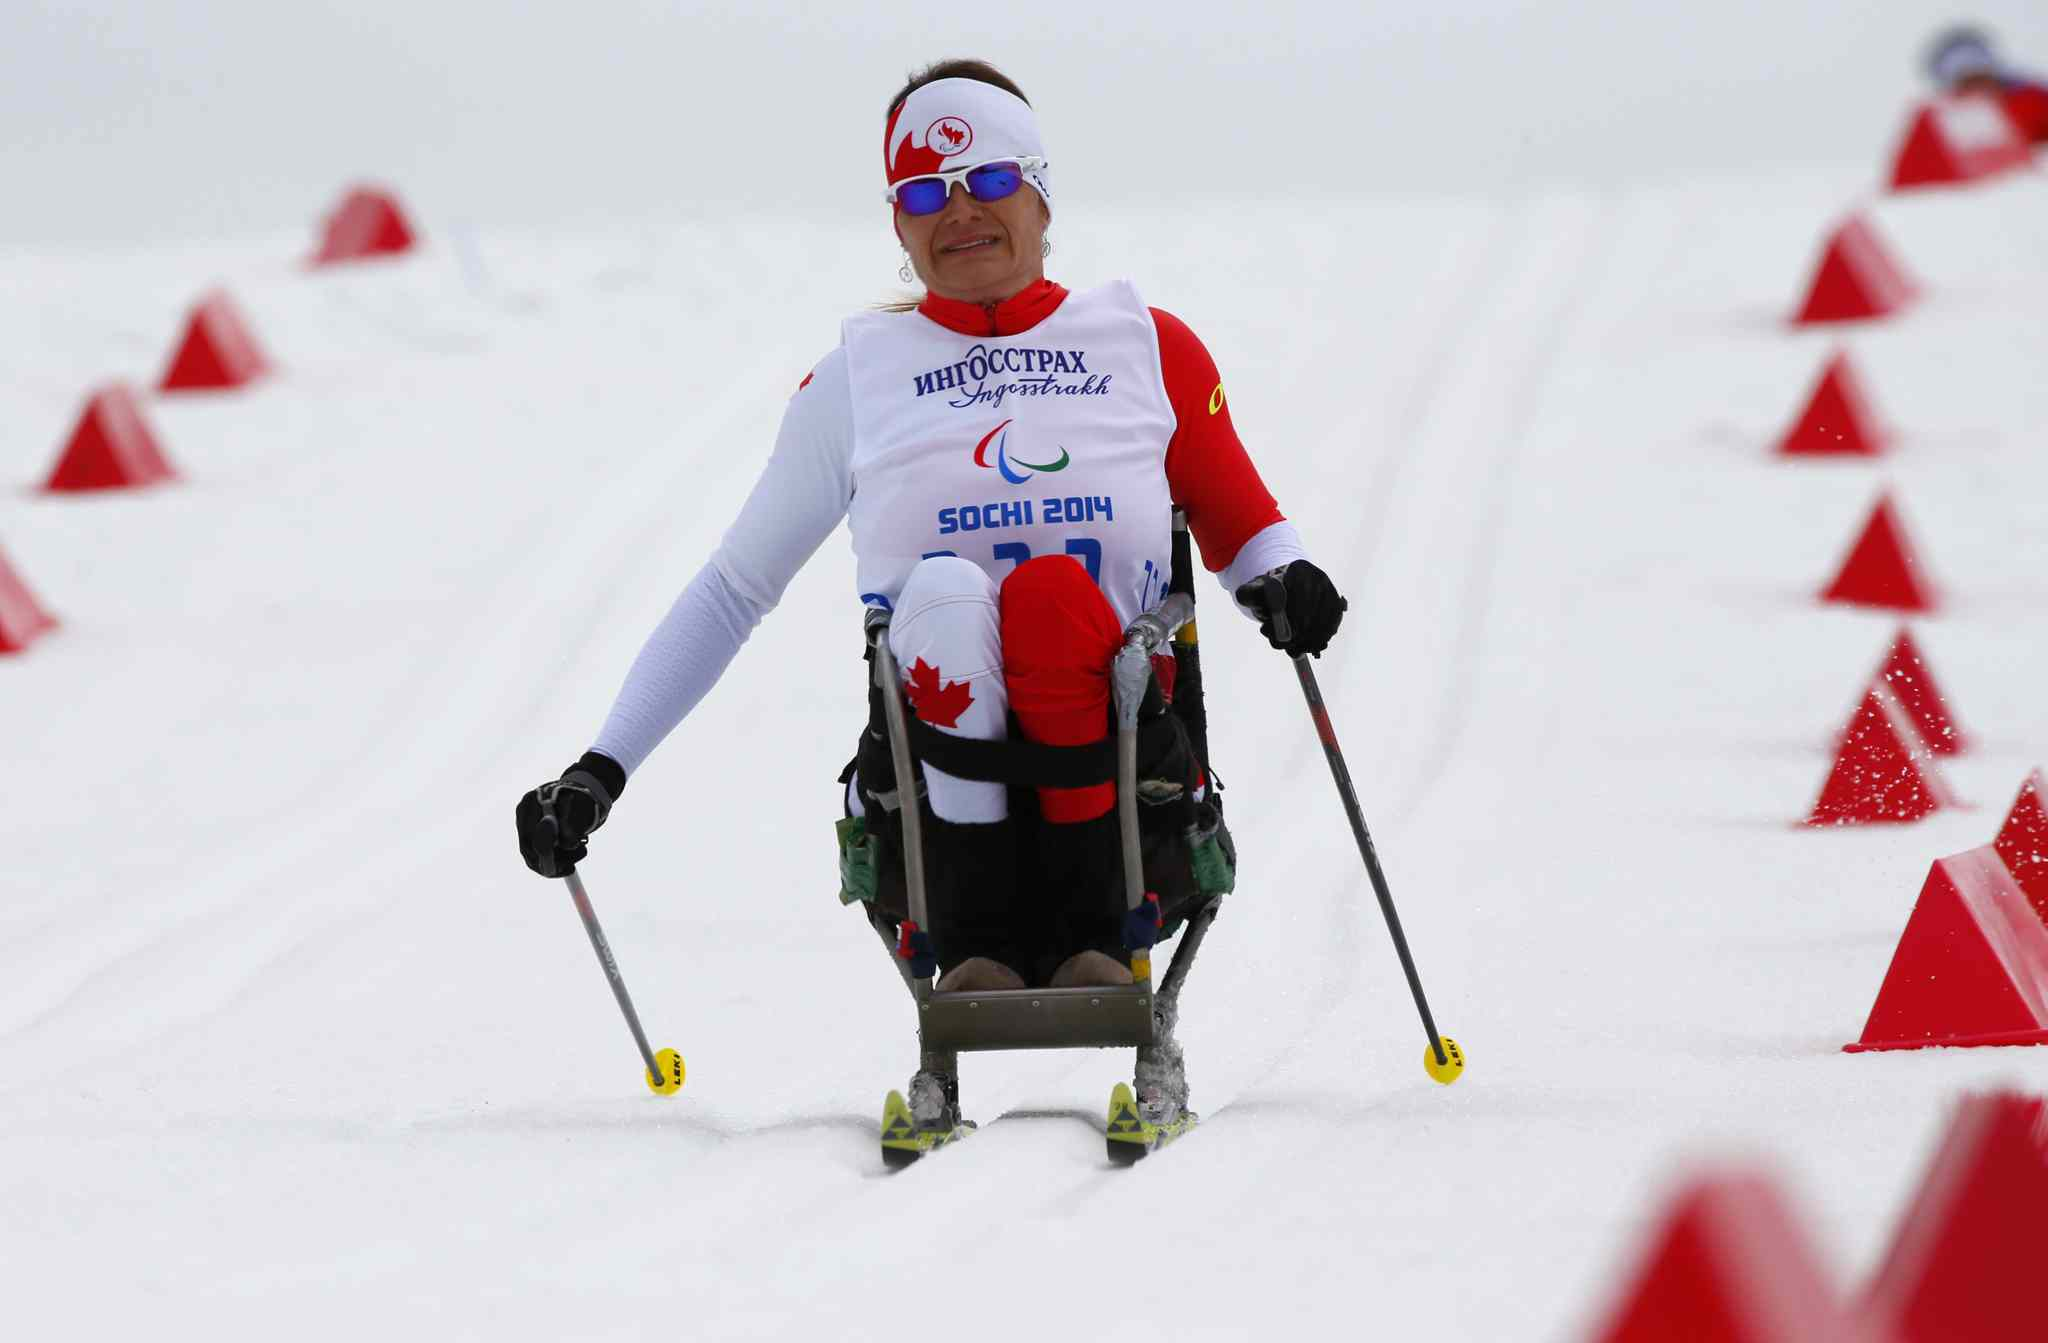 Colette Bourgonje of Canada races during the ladies 12km cross country ski, sitting event Sunday, March 9, 2014, in Krasnaya Polyana, Russia.